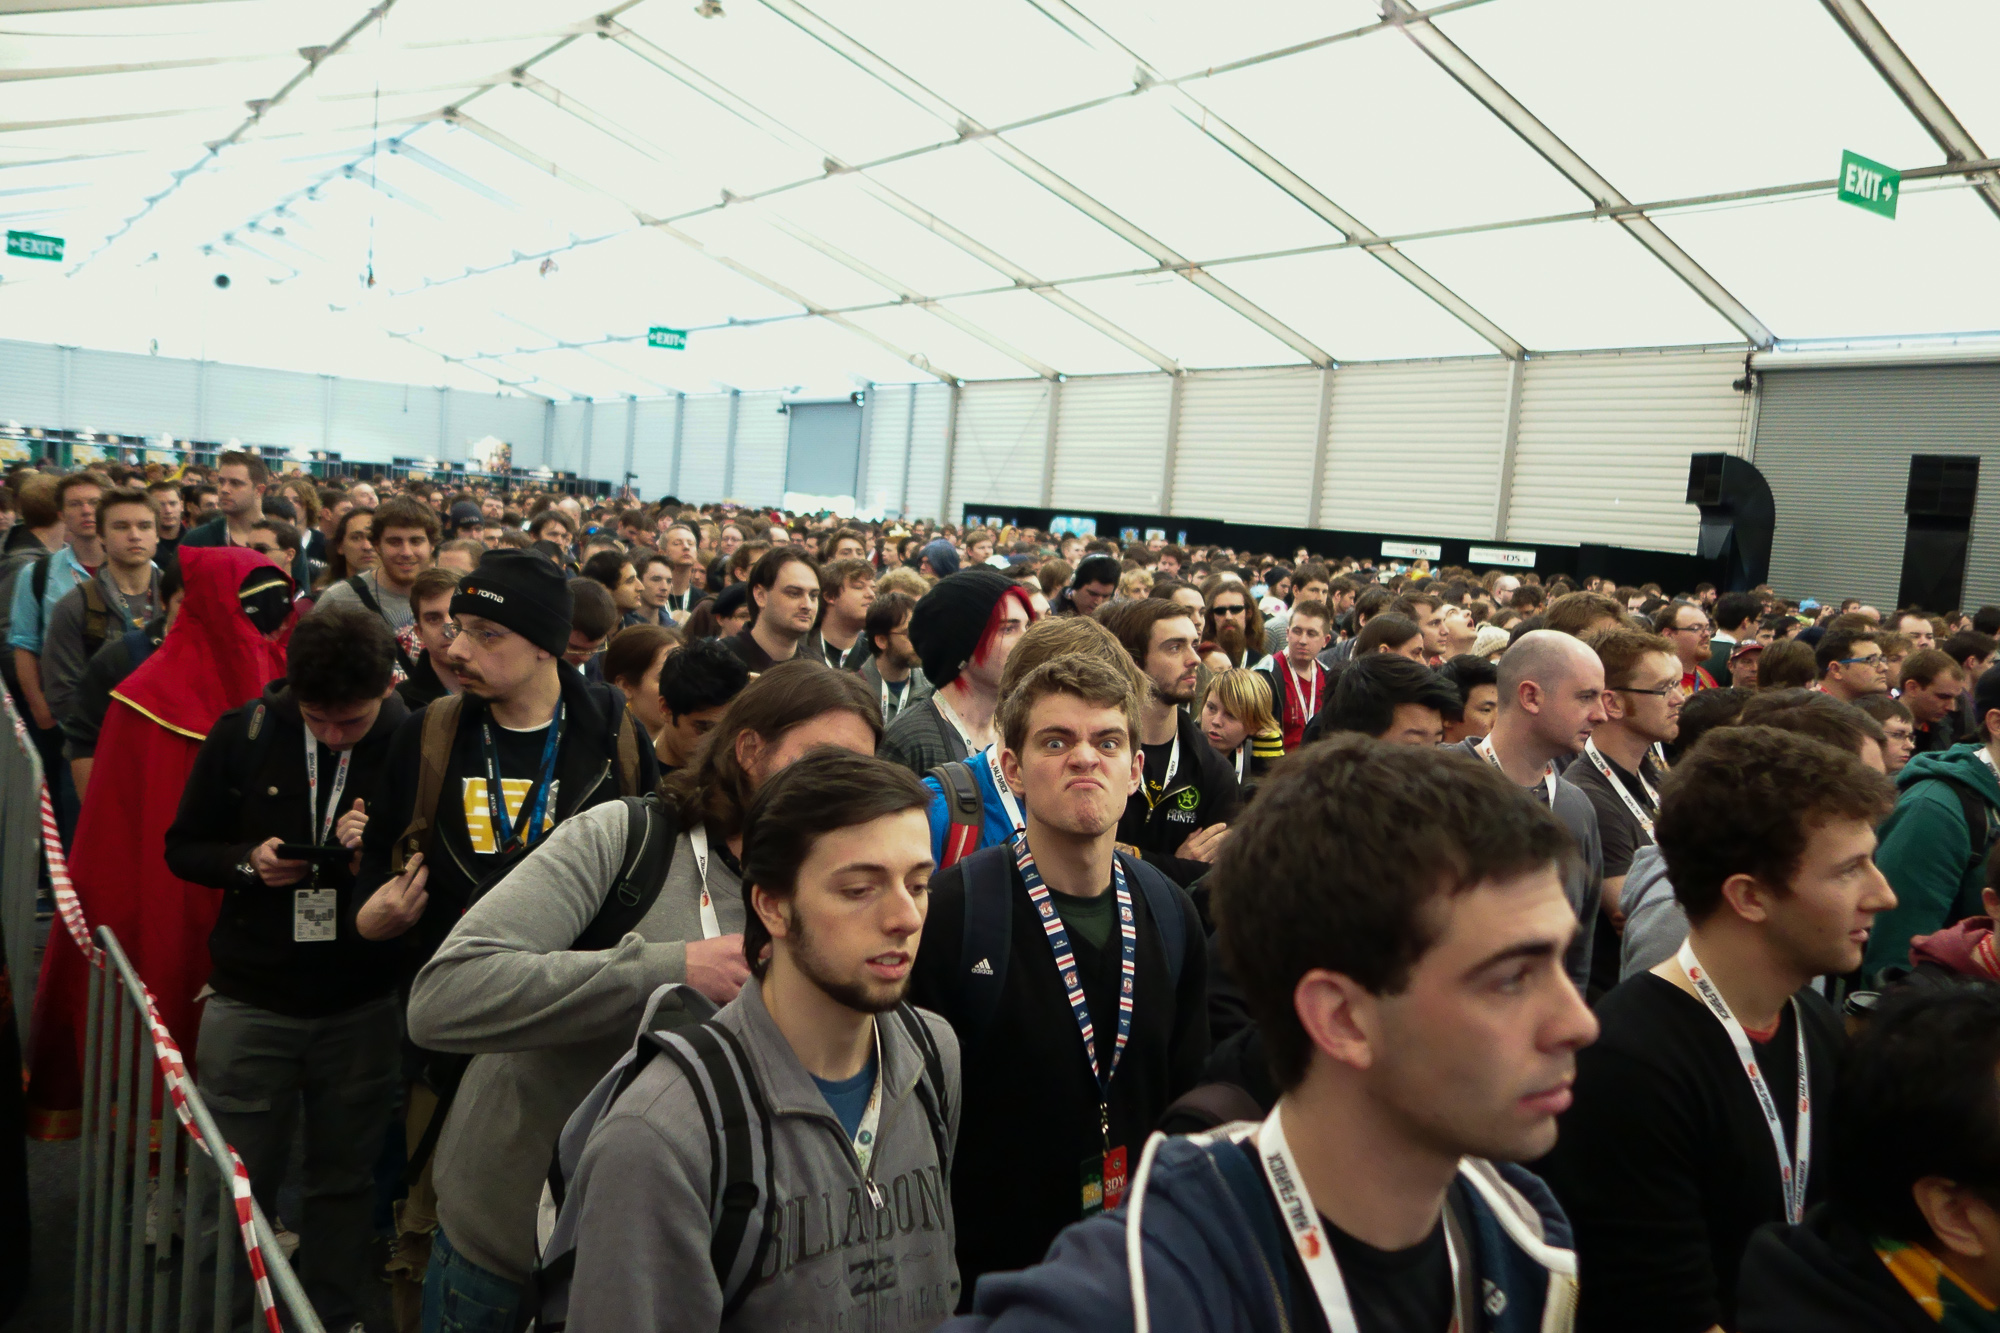 The Queue Room before the masses were admitted on the Saturday